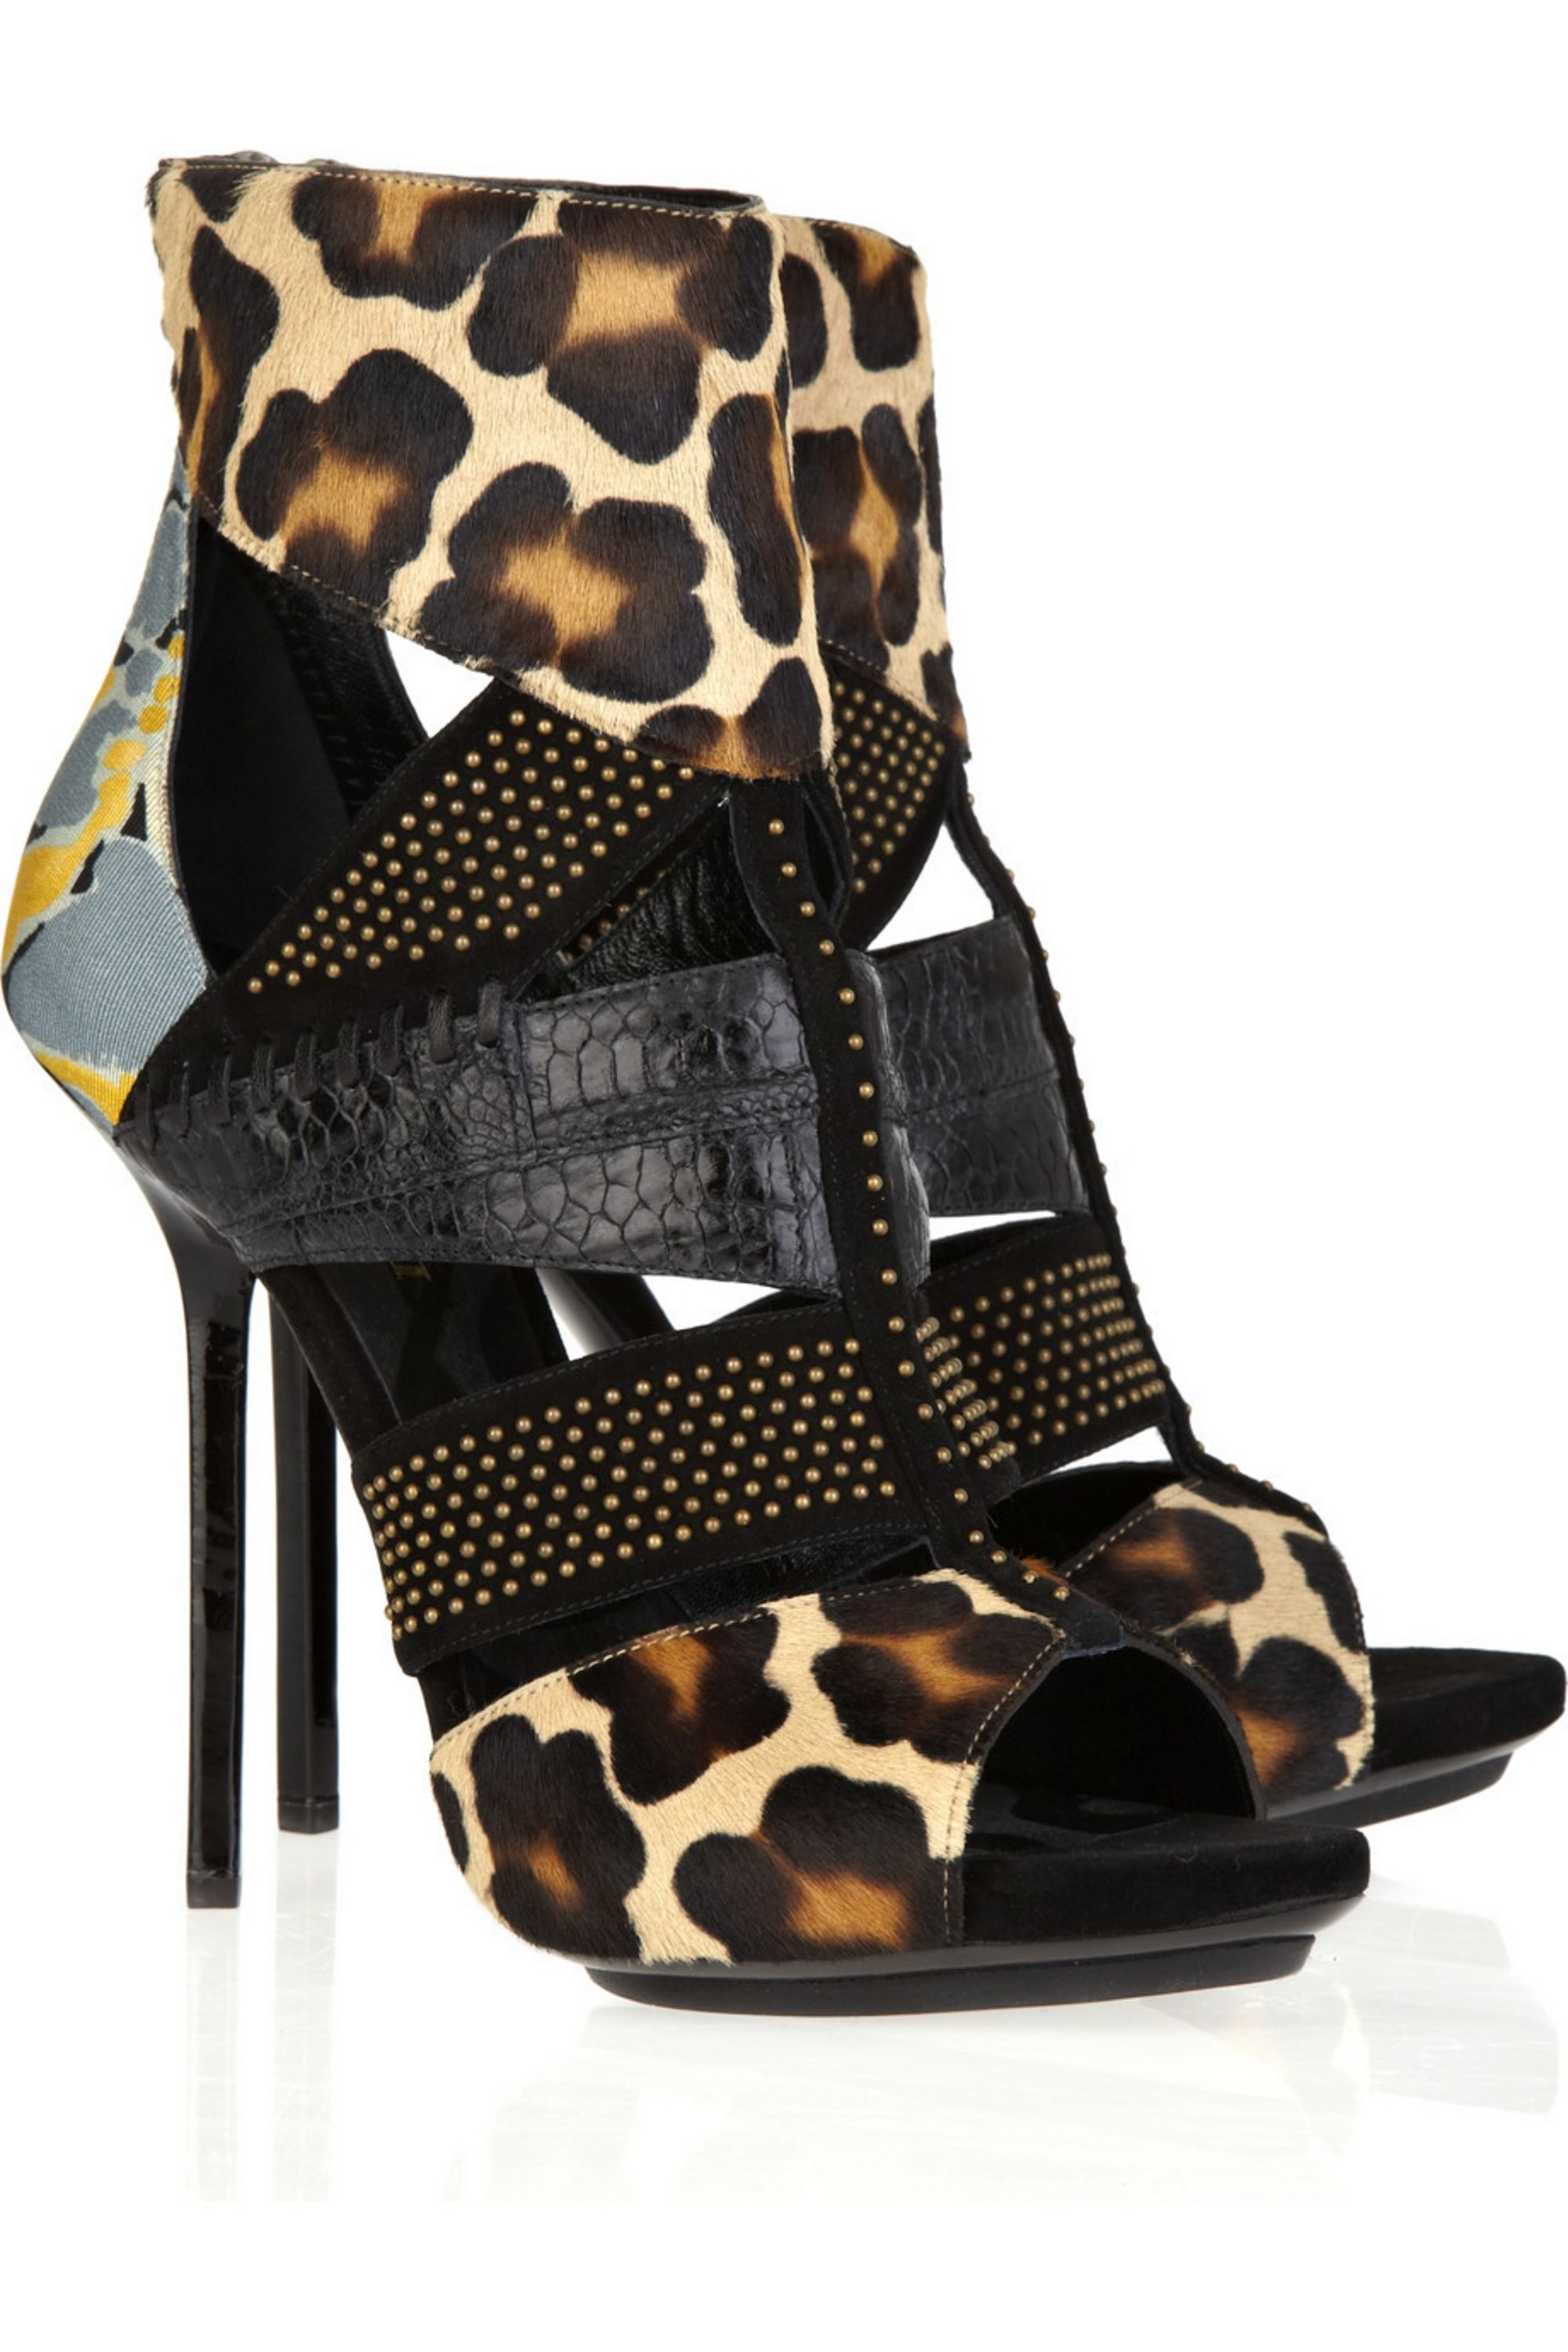 Emilio Pucci Animal-print suede and calf hair sandals